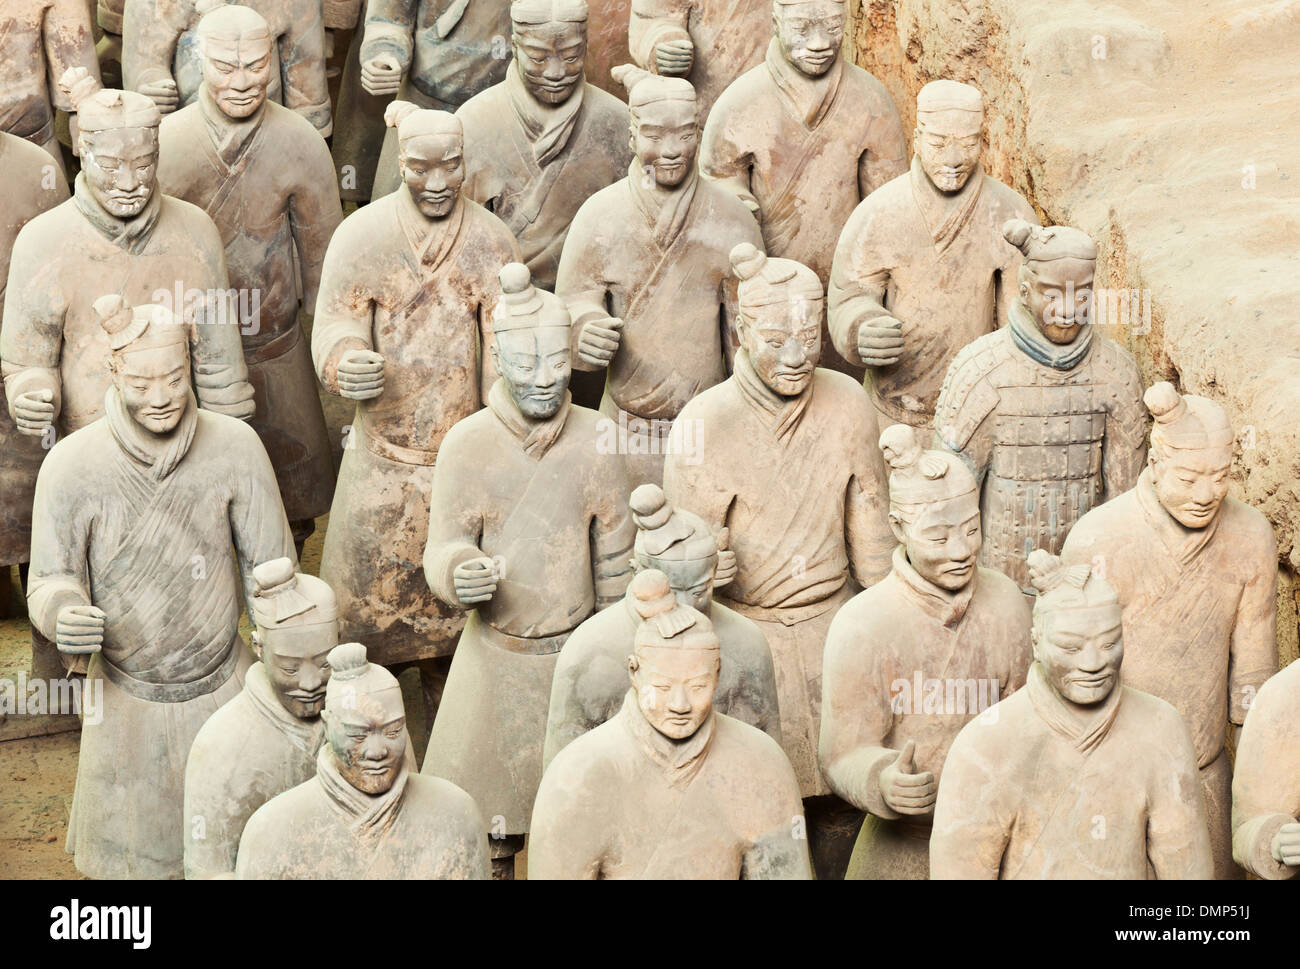 Figures of the Terracotta Warriors Army Pit Number 1, Xian, Shaanxi Province, PRC, People's Republic of China, Asia - Stock Image